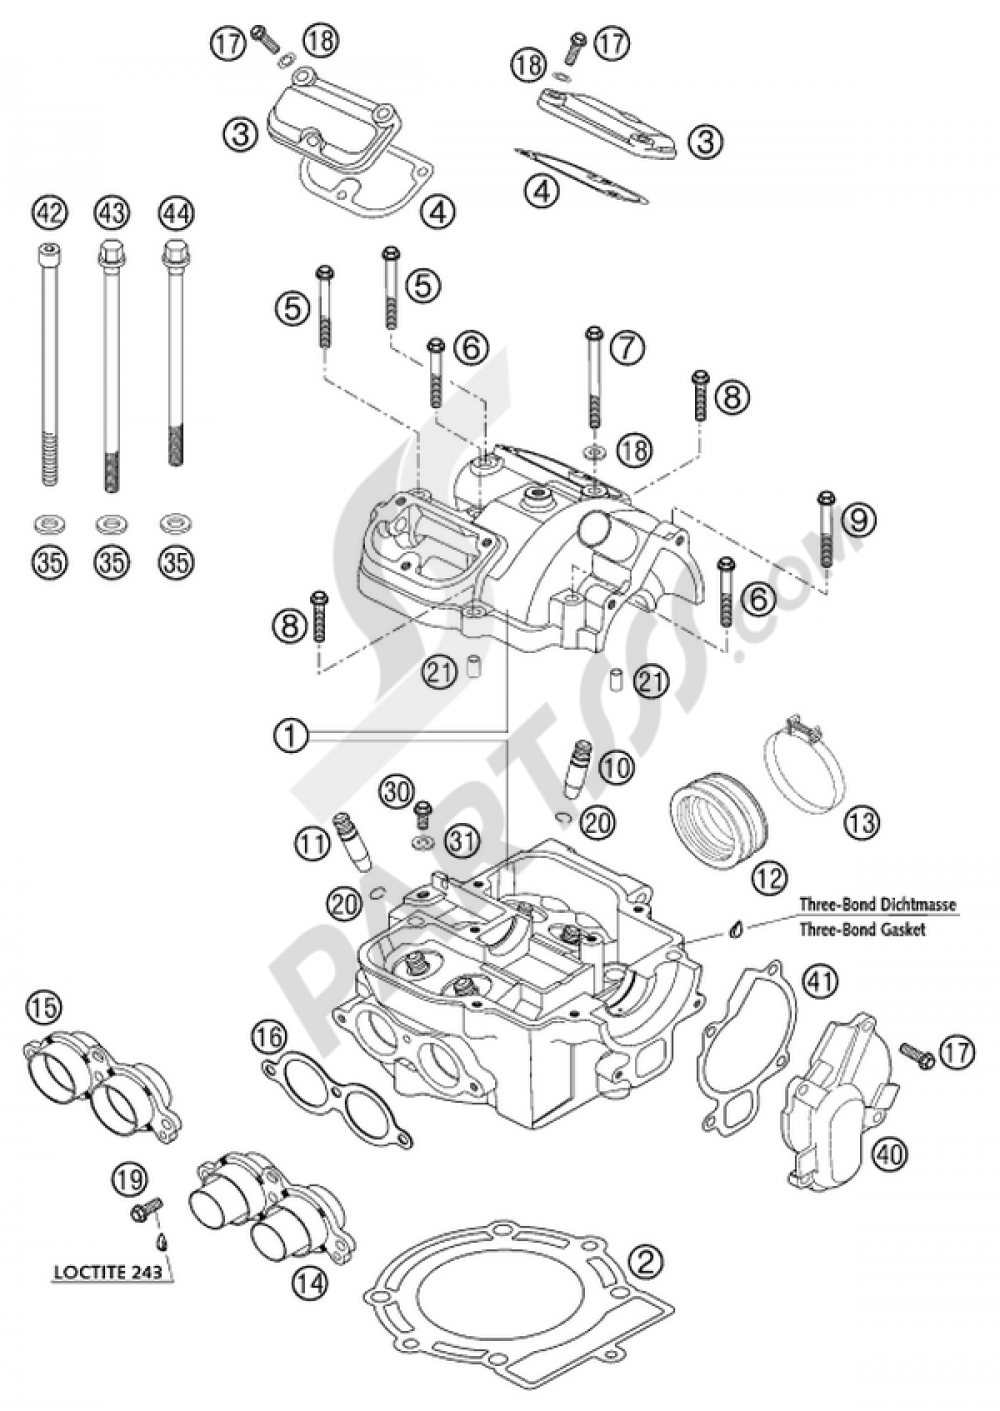 2002 ktm engine diagram - fusebox and wiring diagram series-growth -  series-growth.id-architects.it  id-architects.it